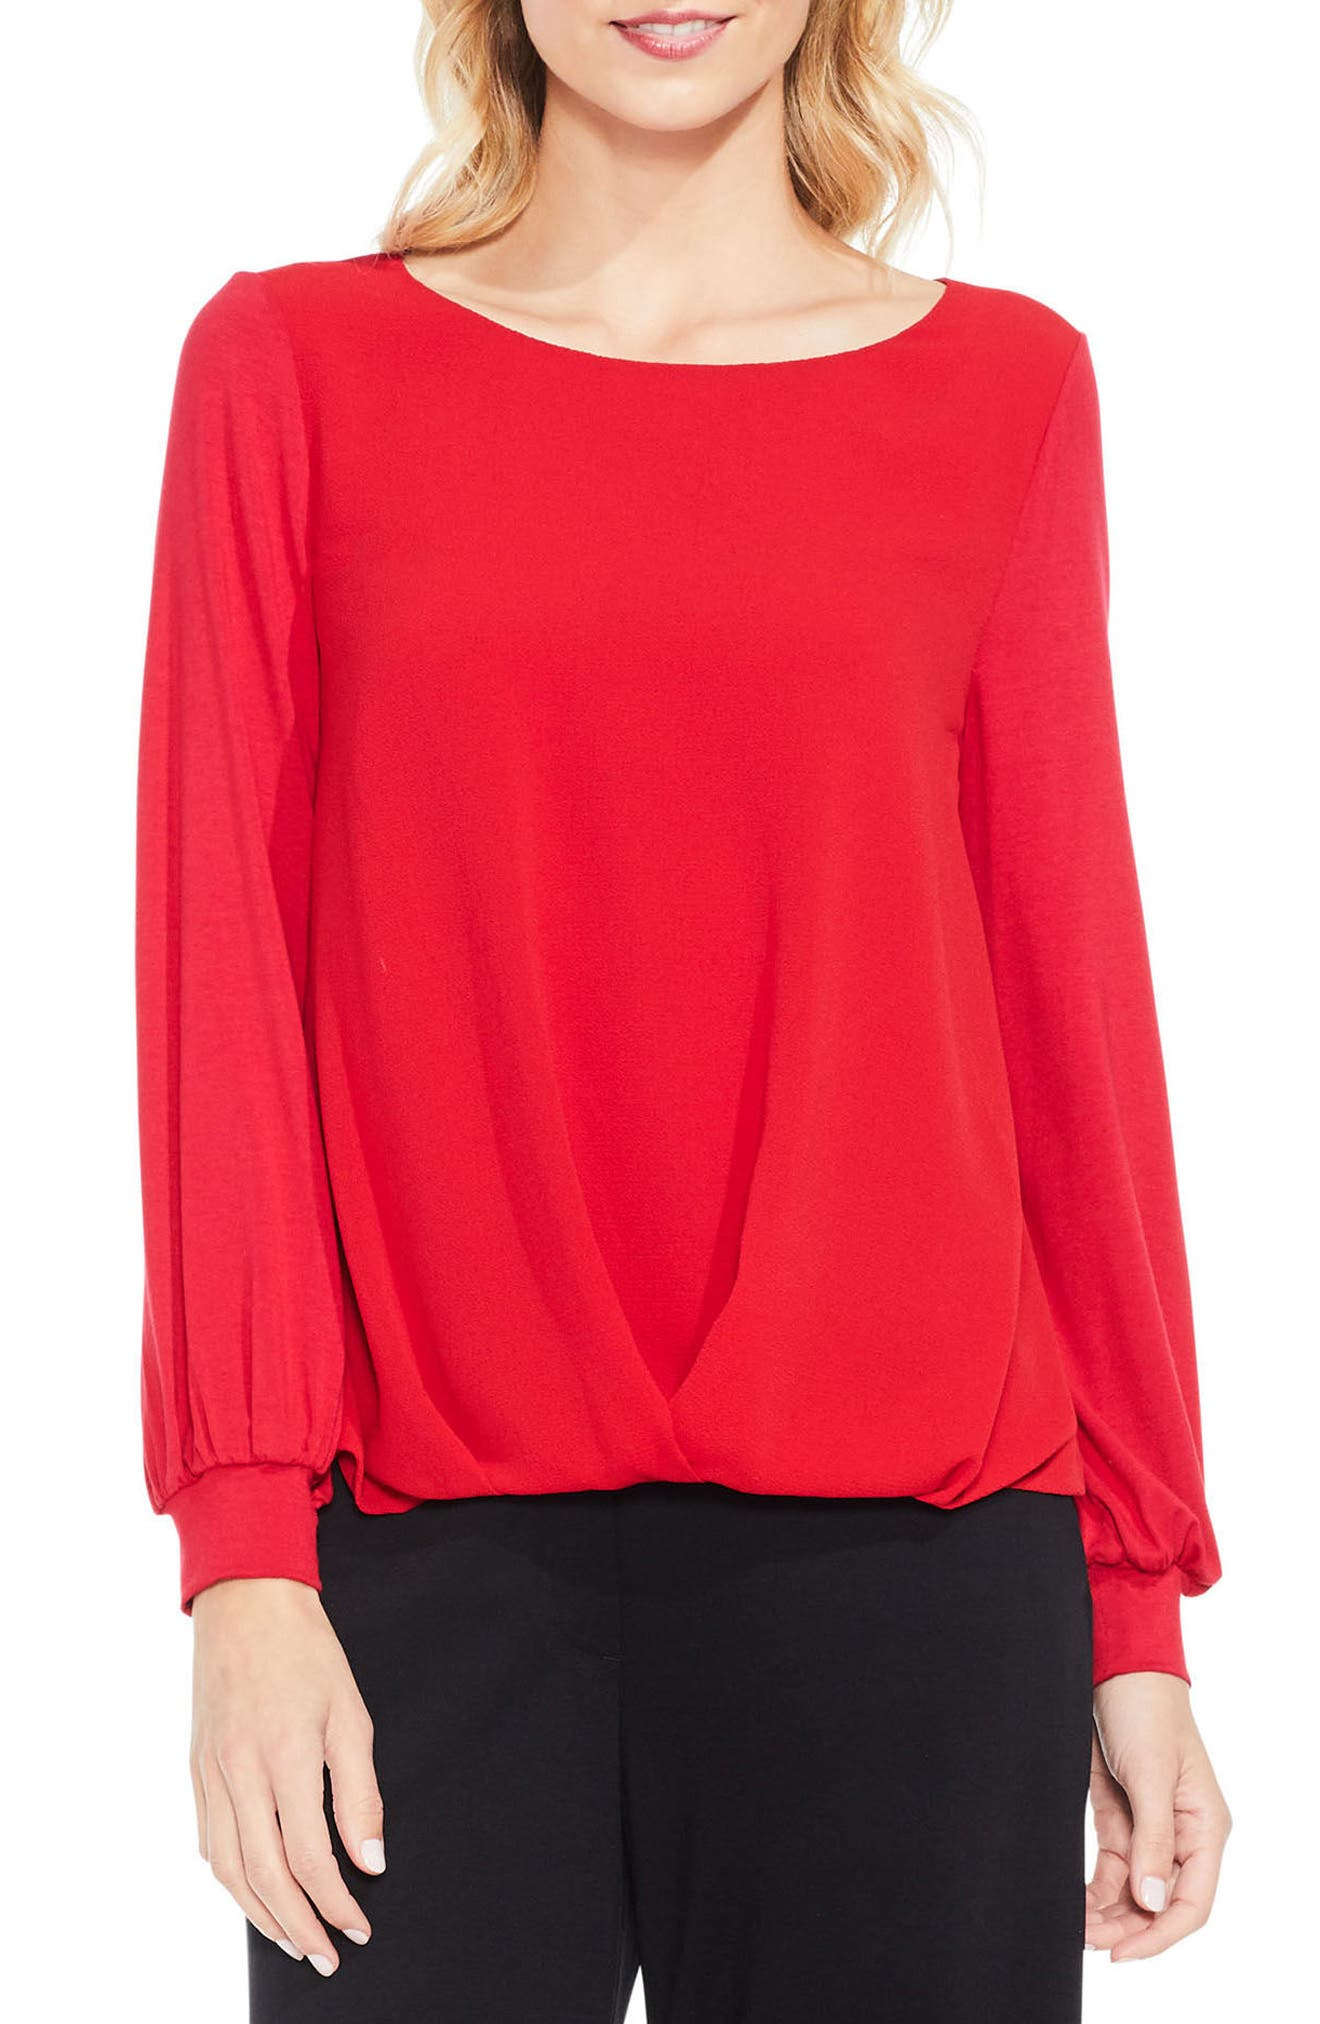 Vince Camuto Long Sleeve Foldover Mix Media Blouse